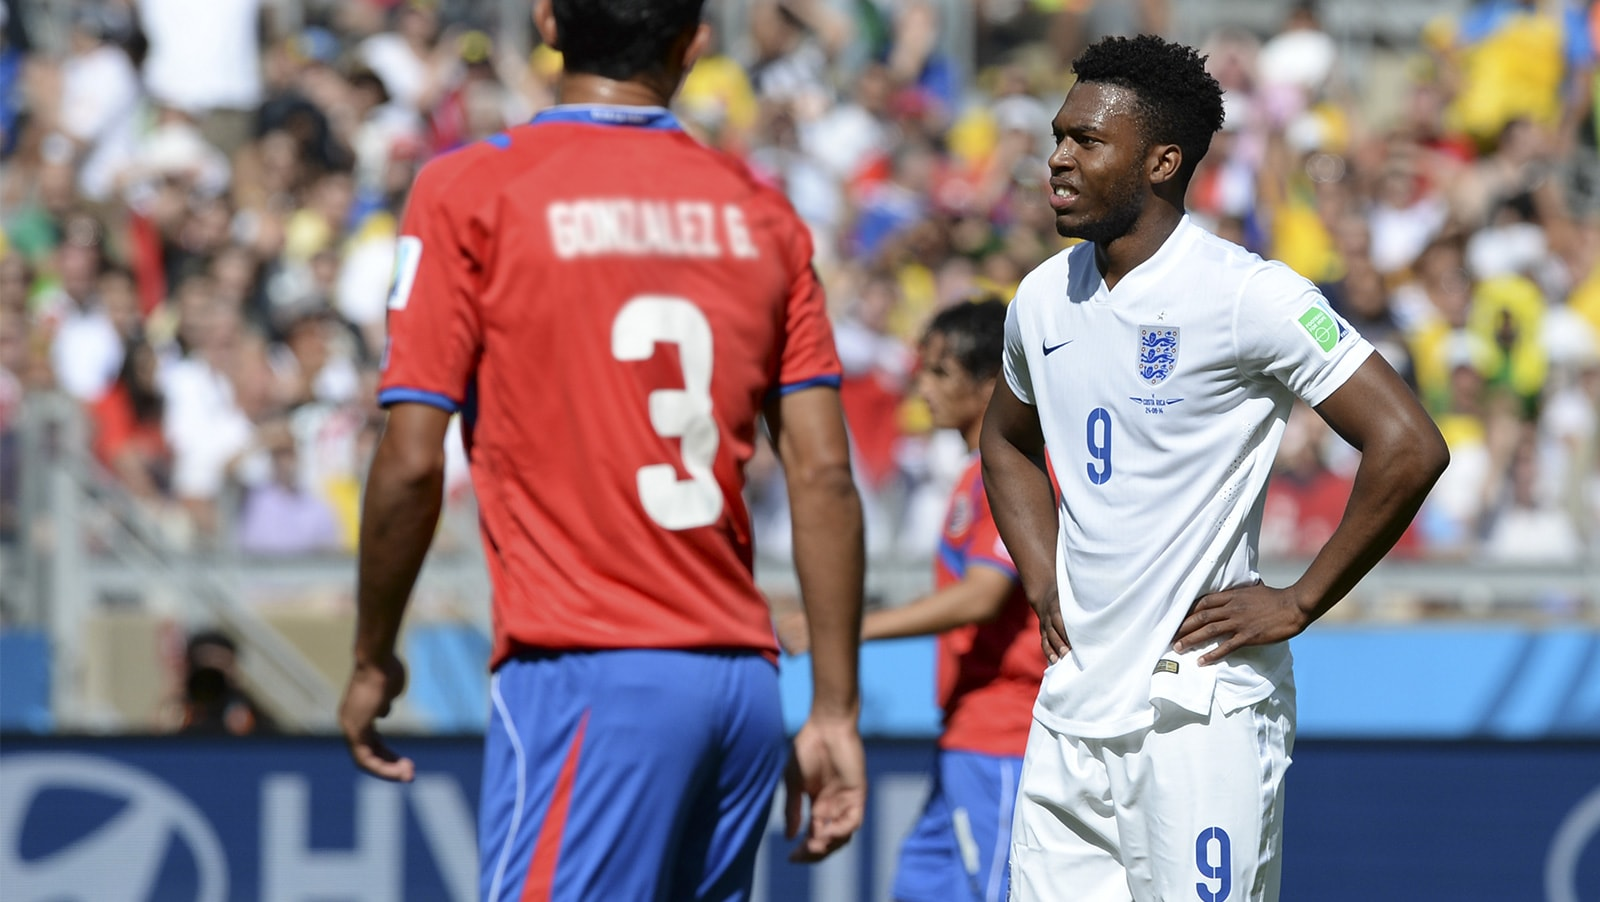 daniel-sturridge-suspended-for-four-months-for-betting-violations-min